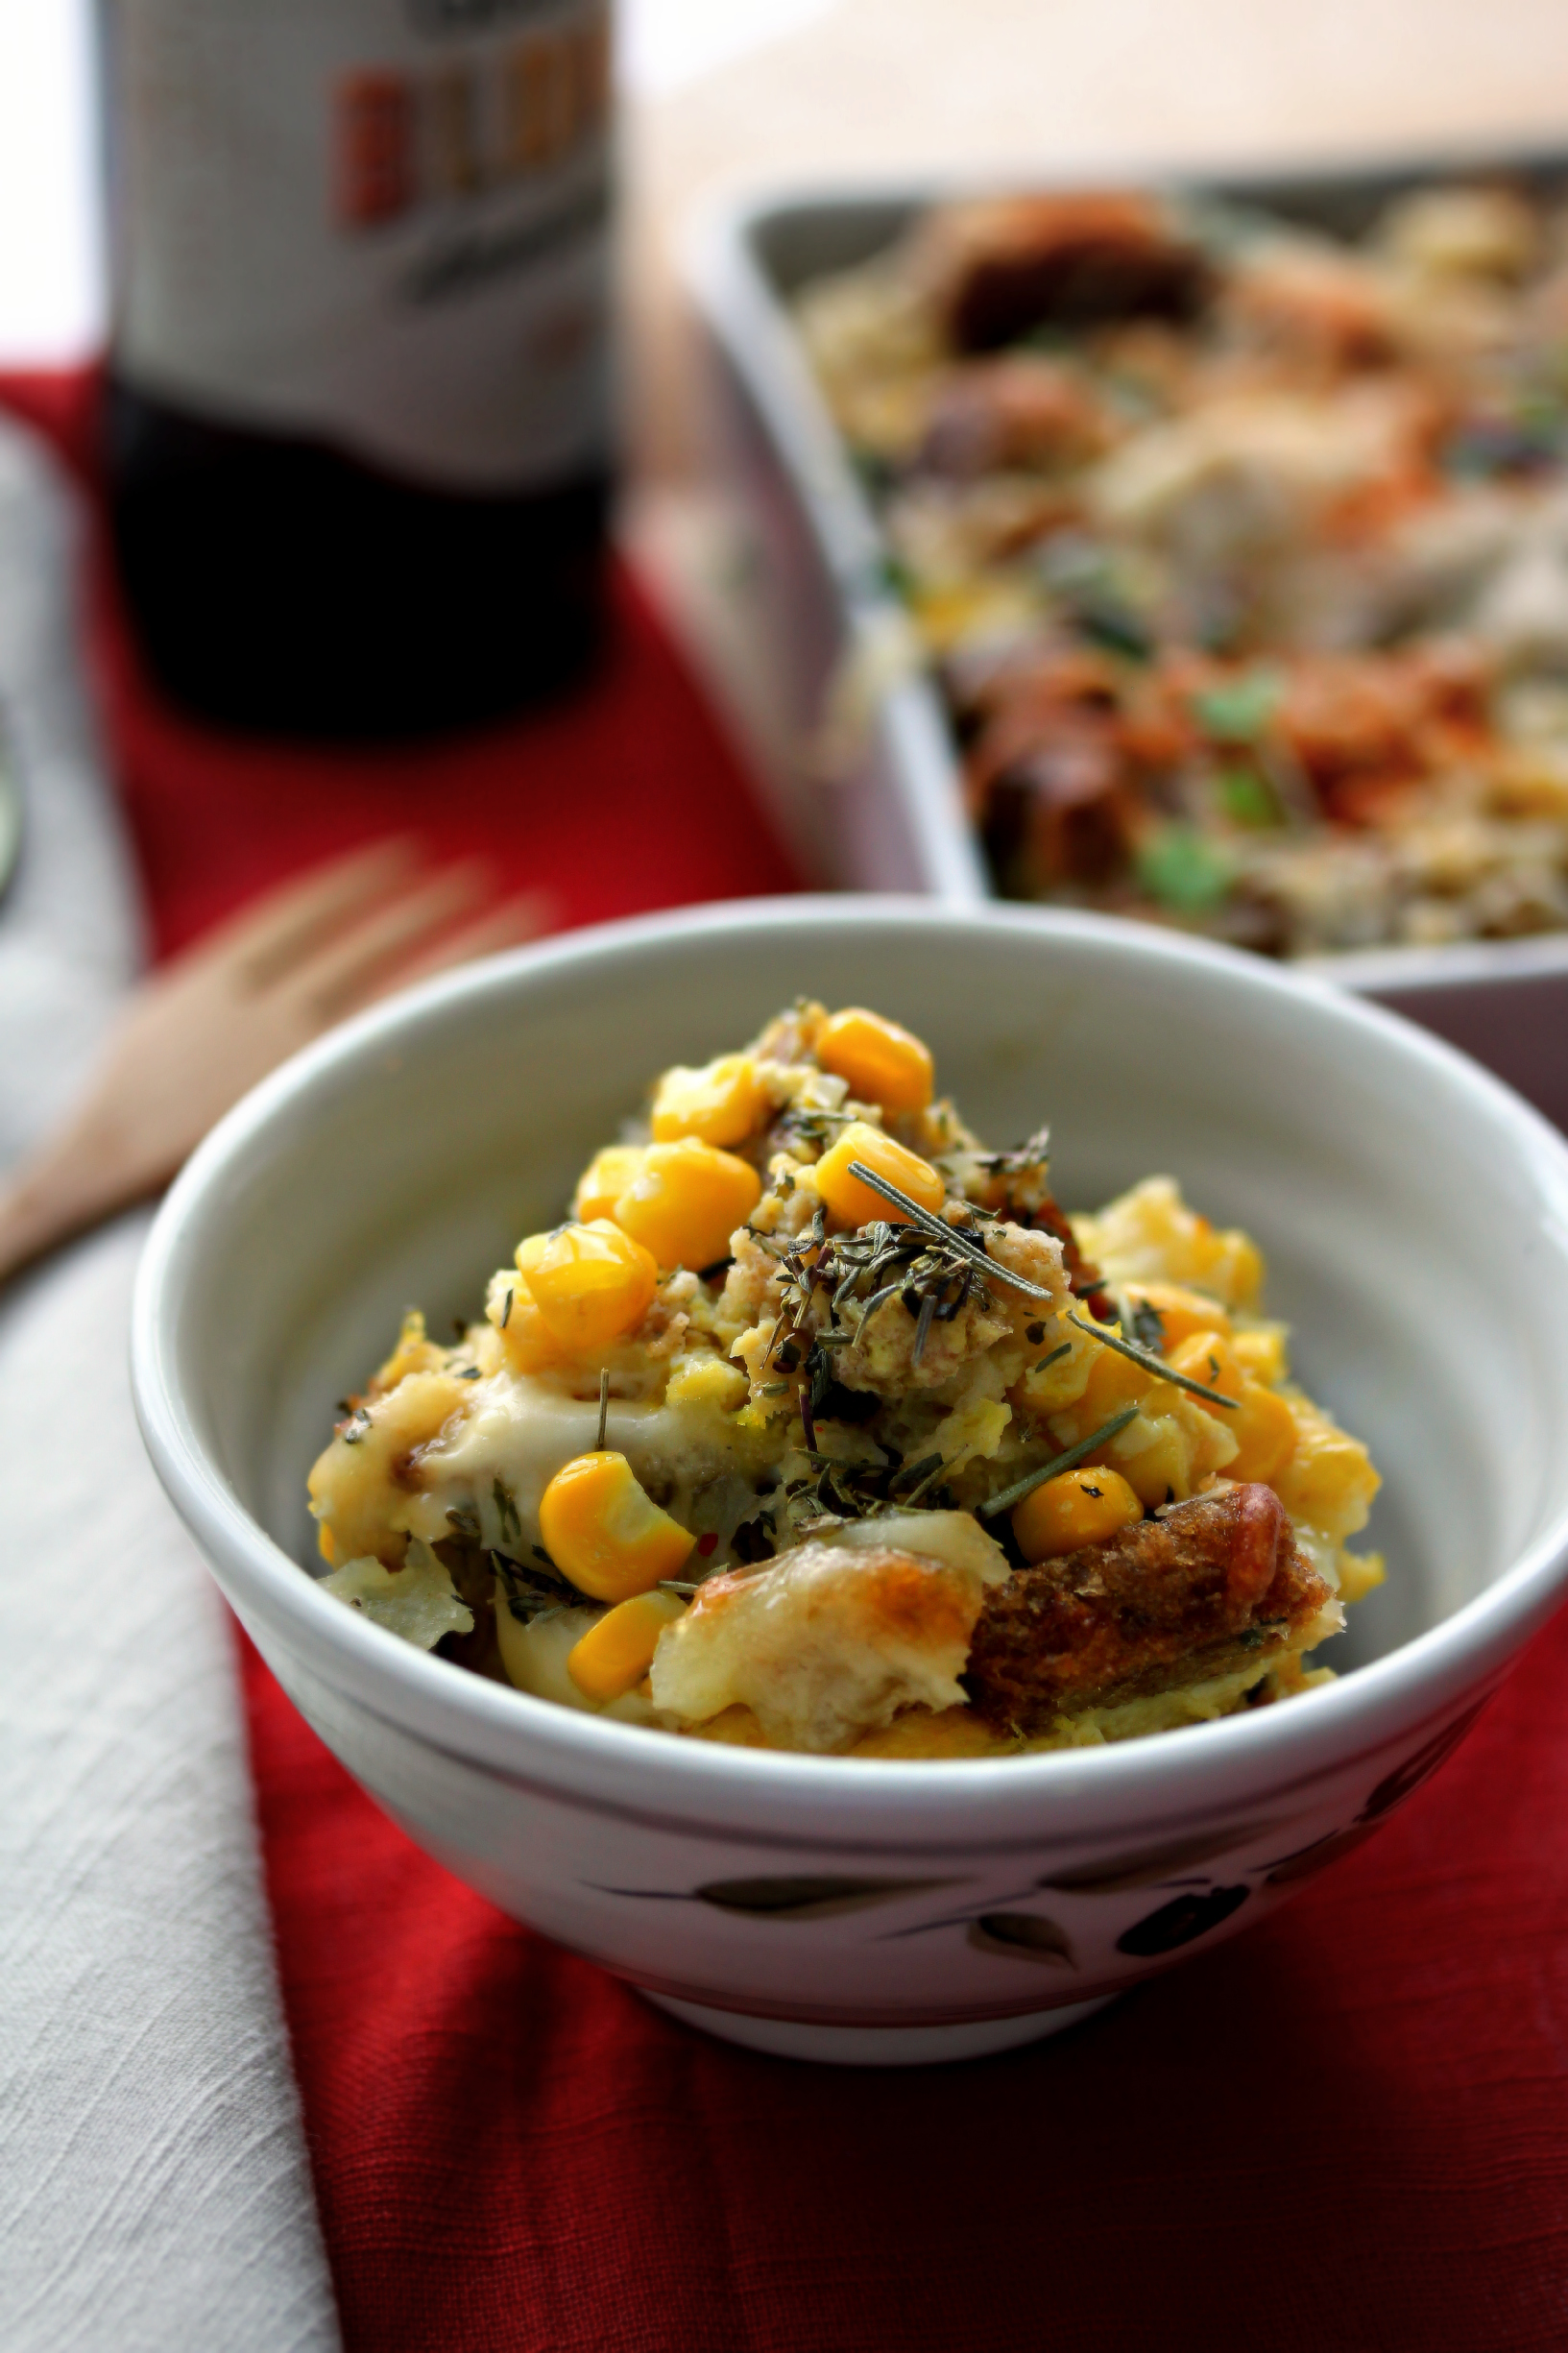 ©Savory Bread Pudding in Small Bowl by Dena T Bray